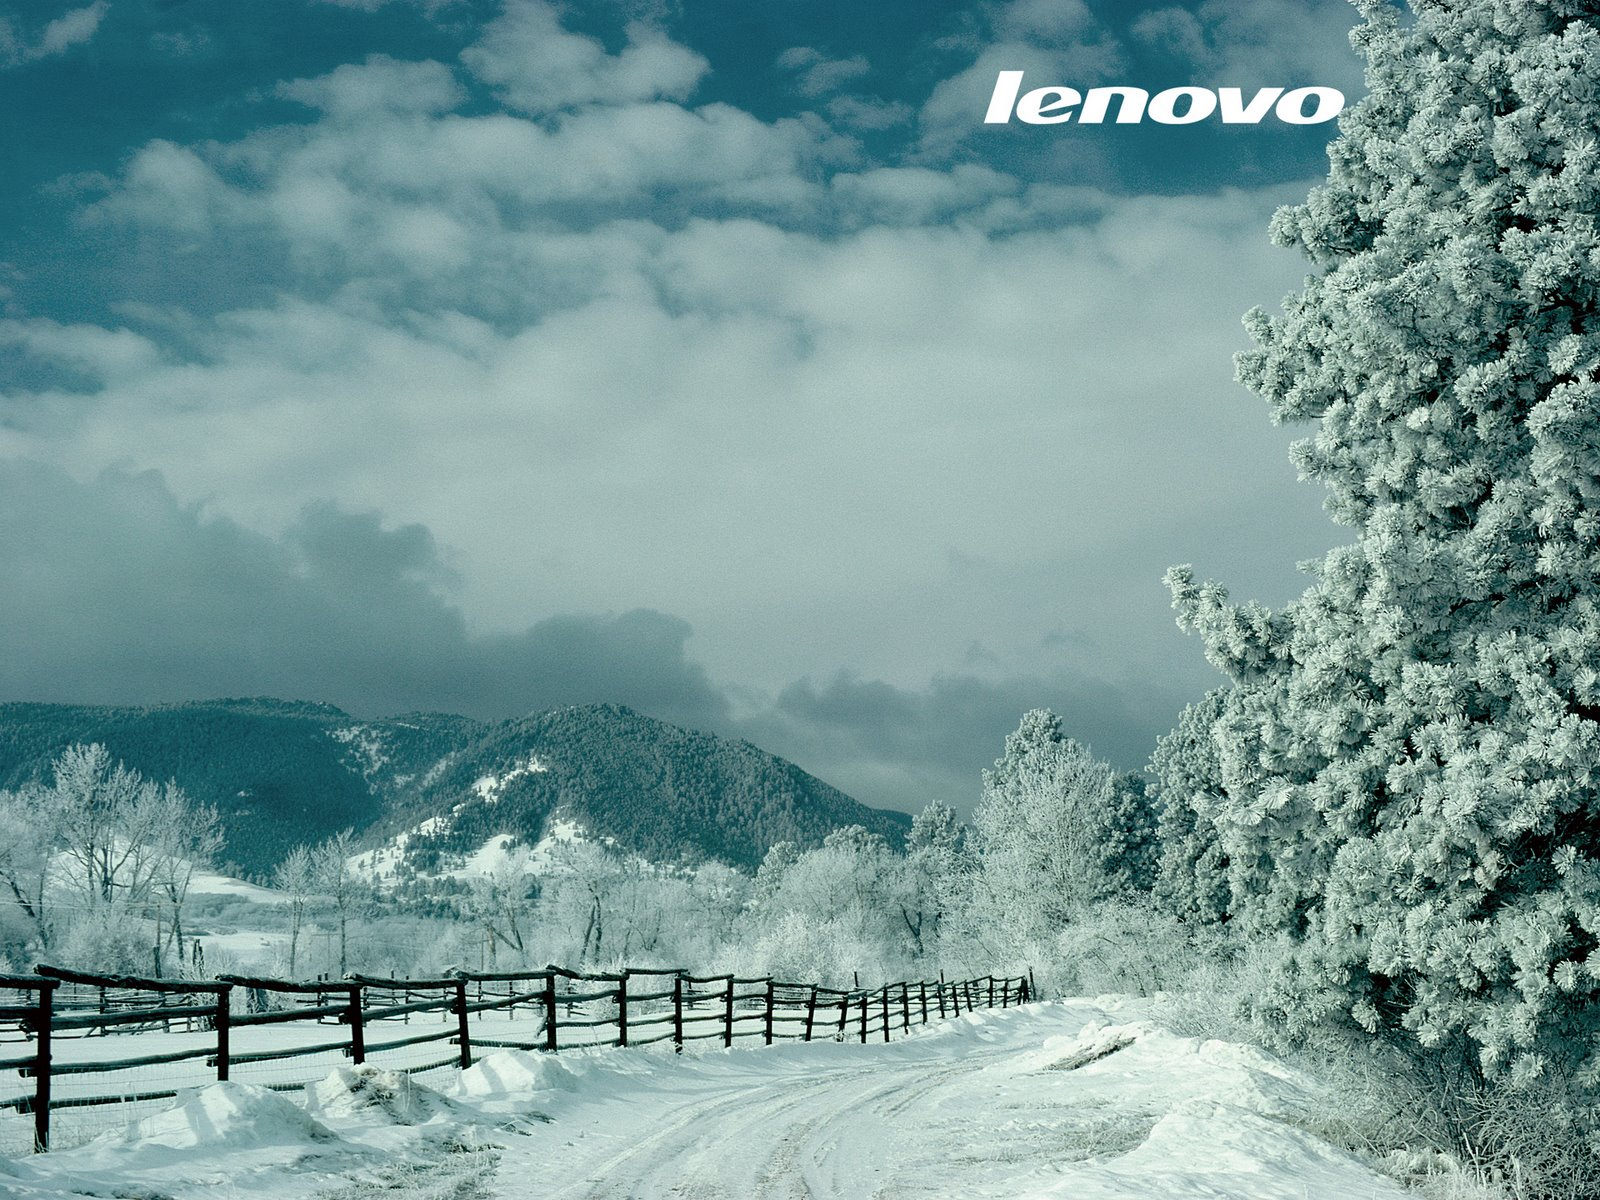 Lenovo Wallpaper Collection in HD for Download 1600x1200